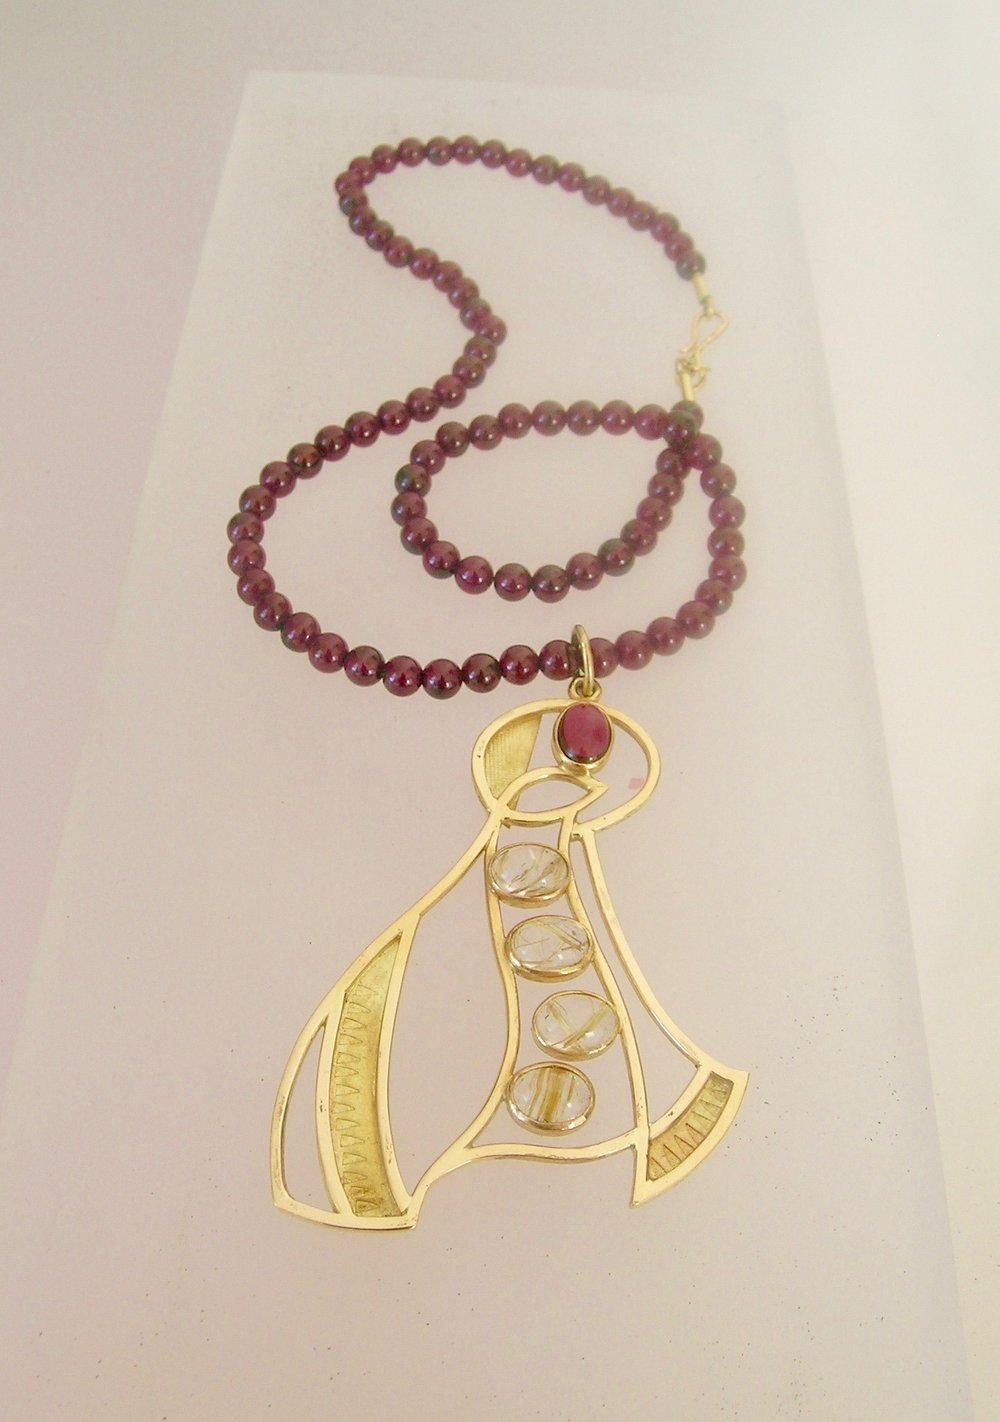 ADELE III NECKLACE